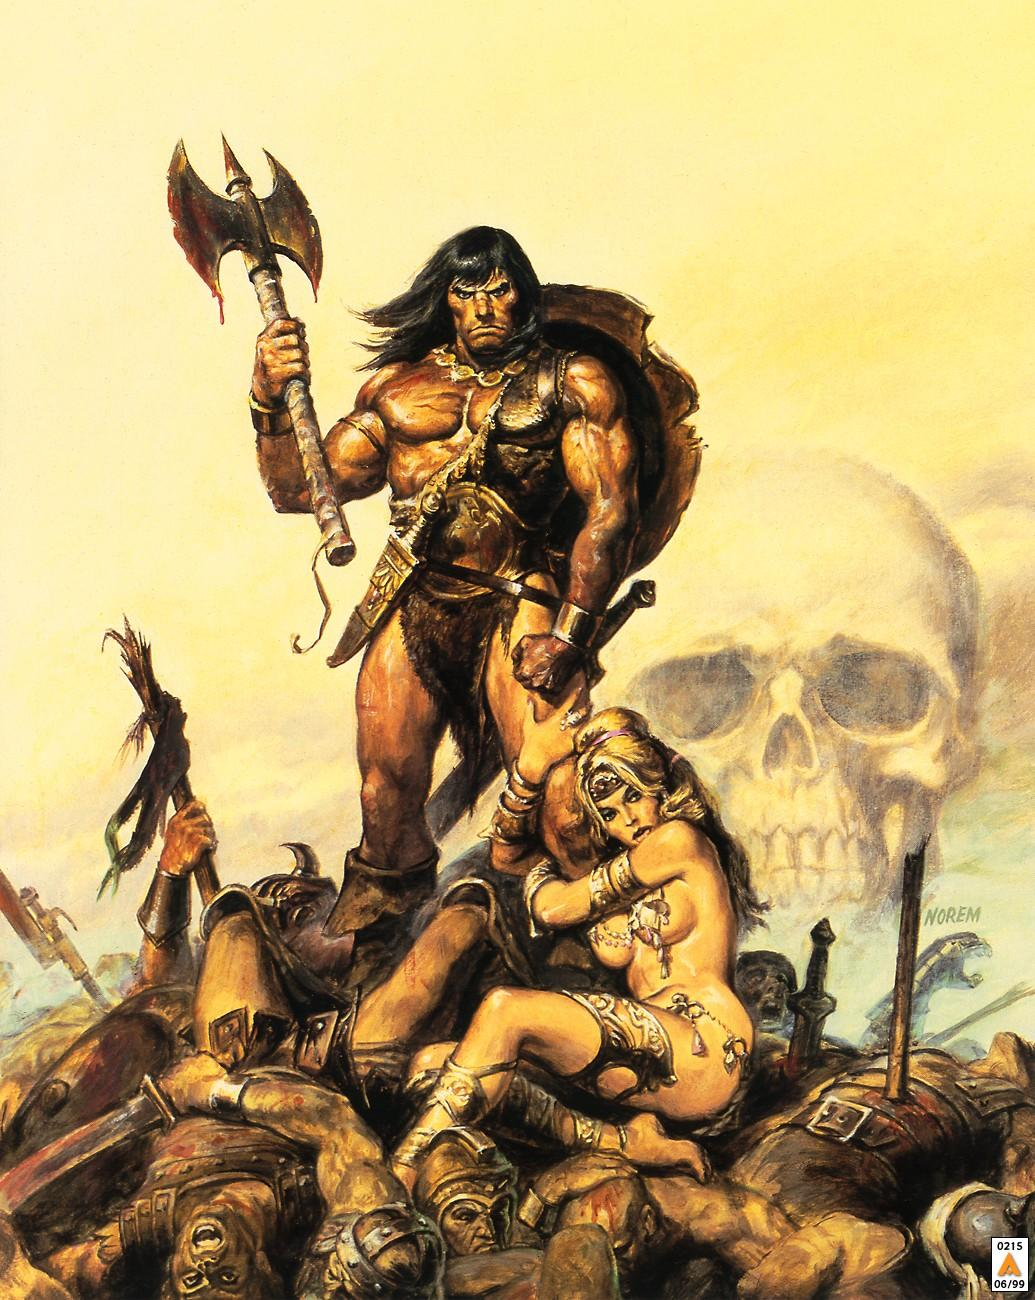 conan the barbarian Robert e howard's creation of conan the barbarian, a sword-and-sorcery fantasy icon, is about to get new life long after the author's untimely death arnold schwarzenegger became synonymous .